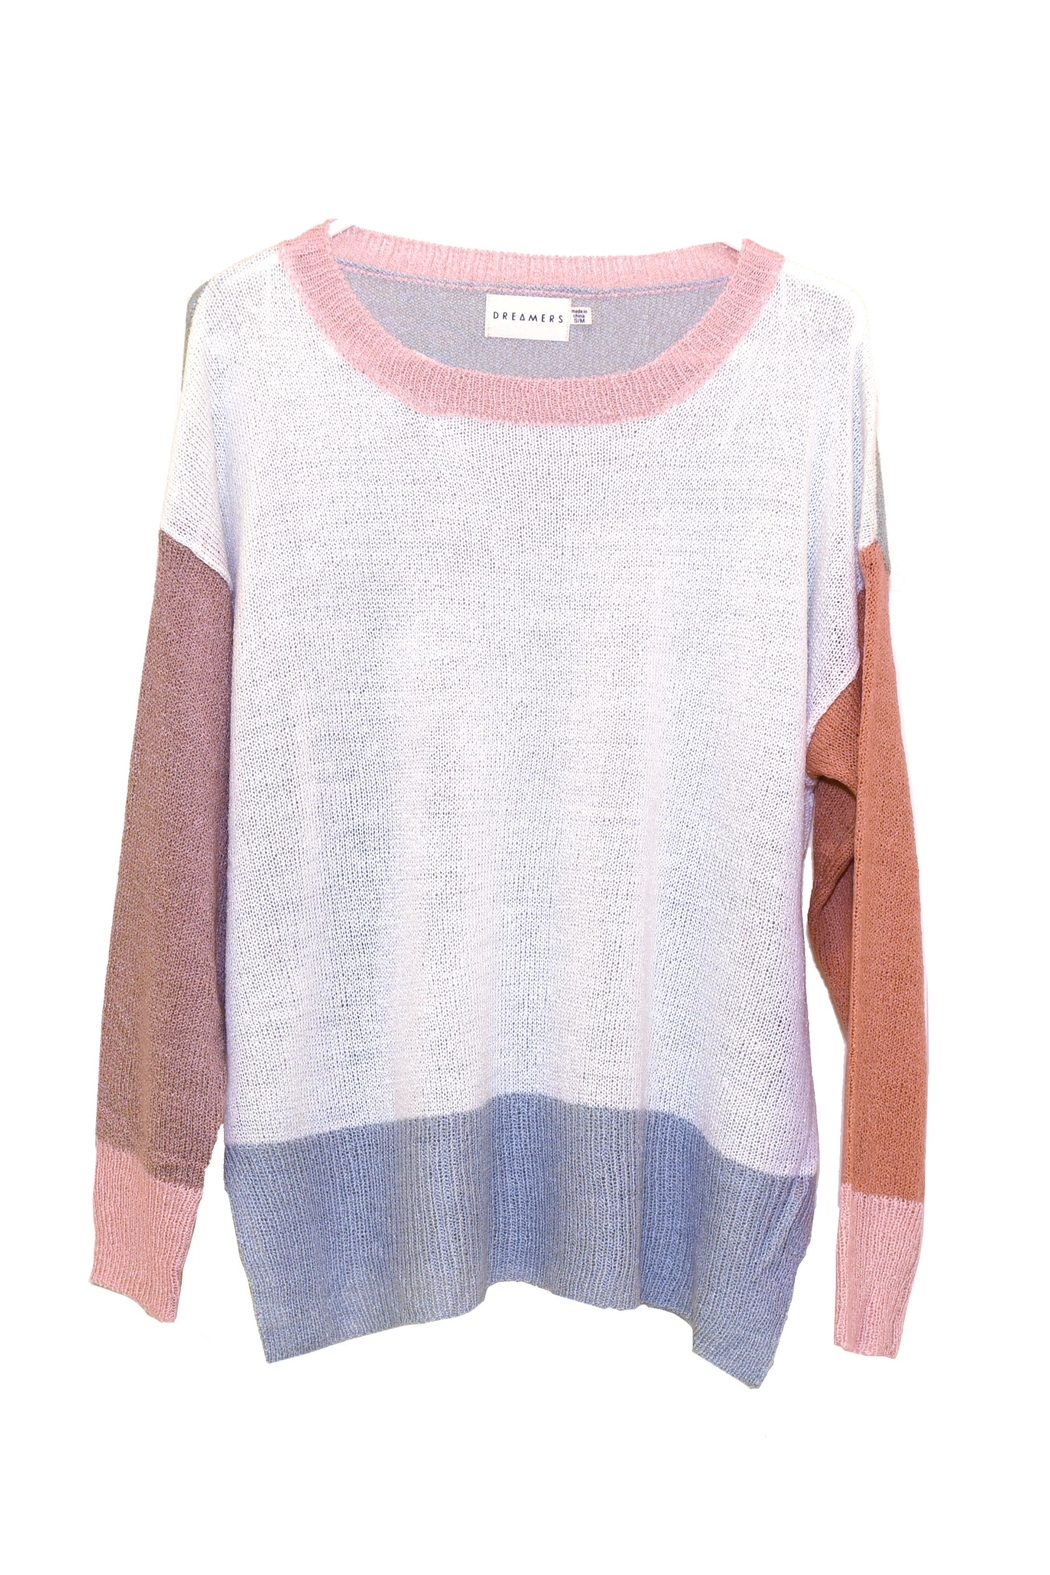 Dreamers Color-Block Knit Sweater - Main Image